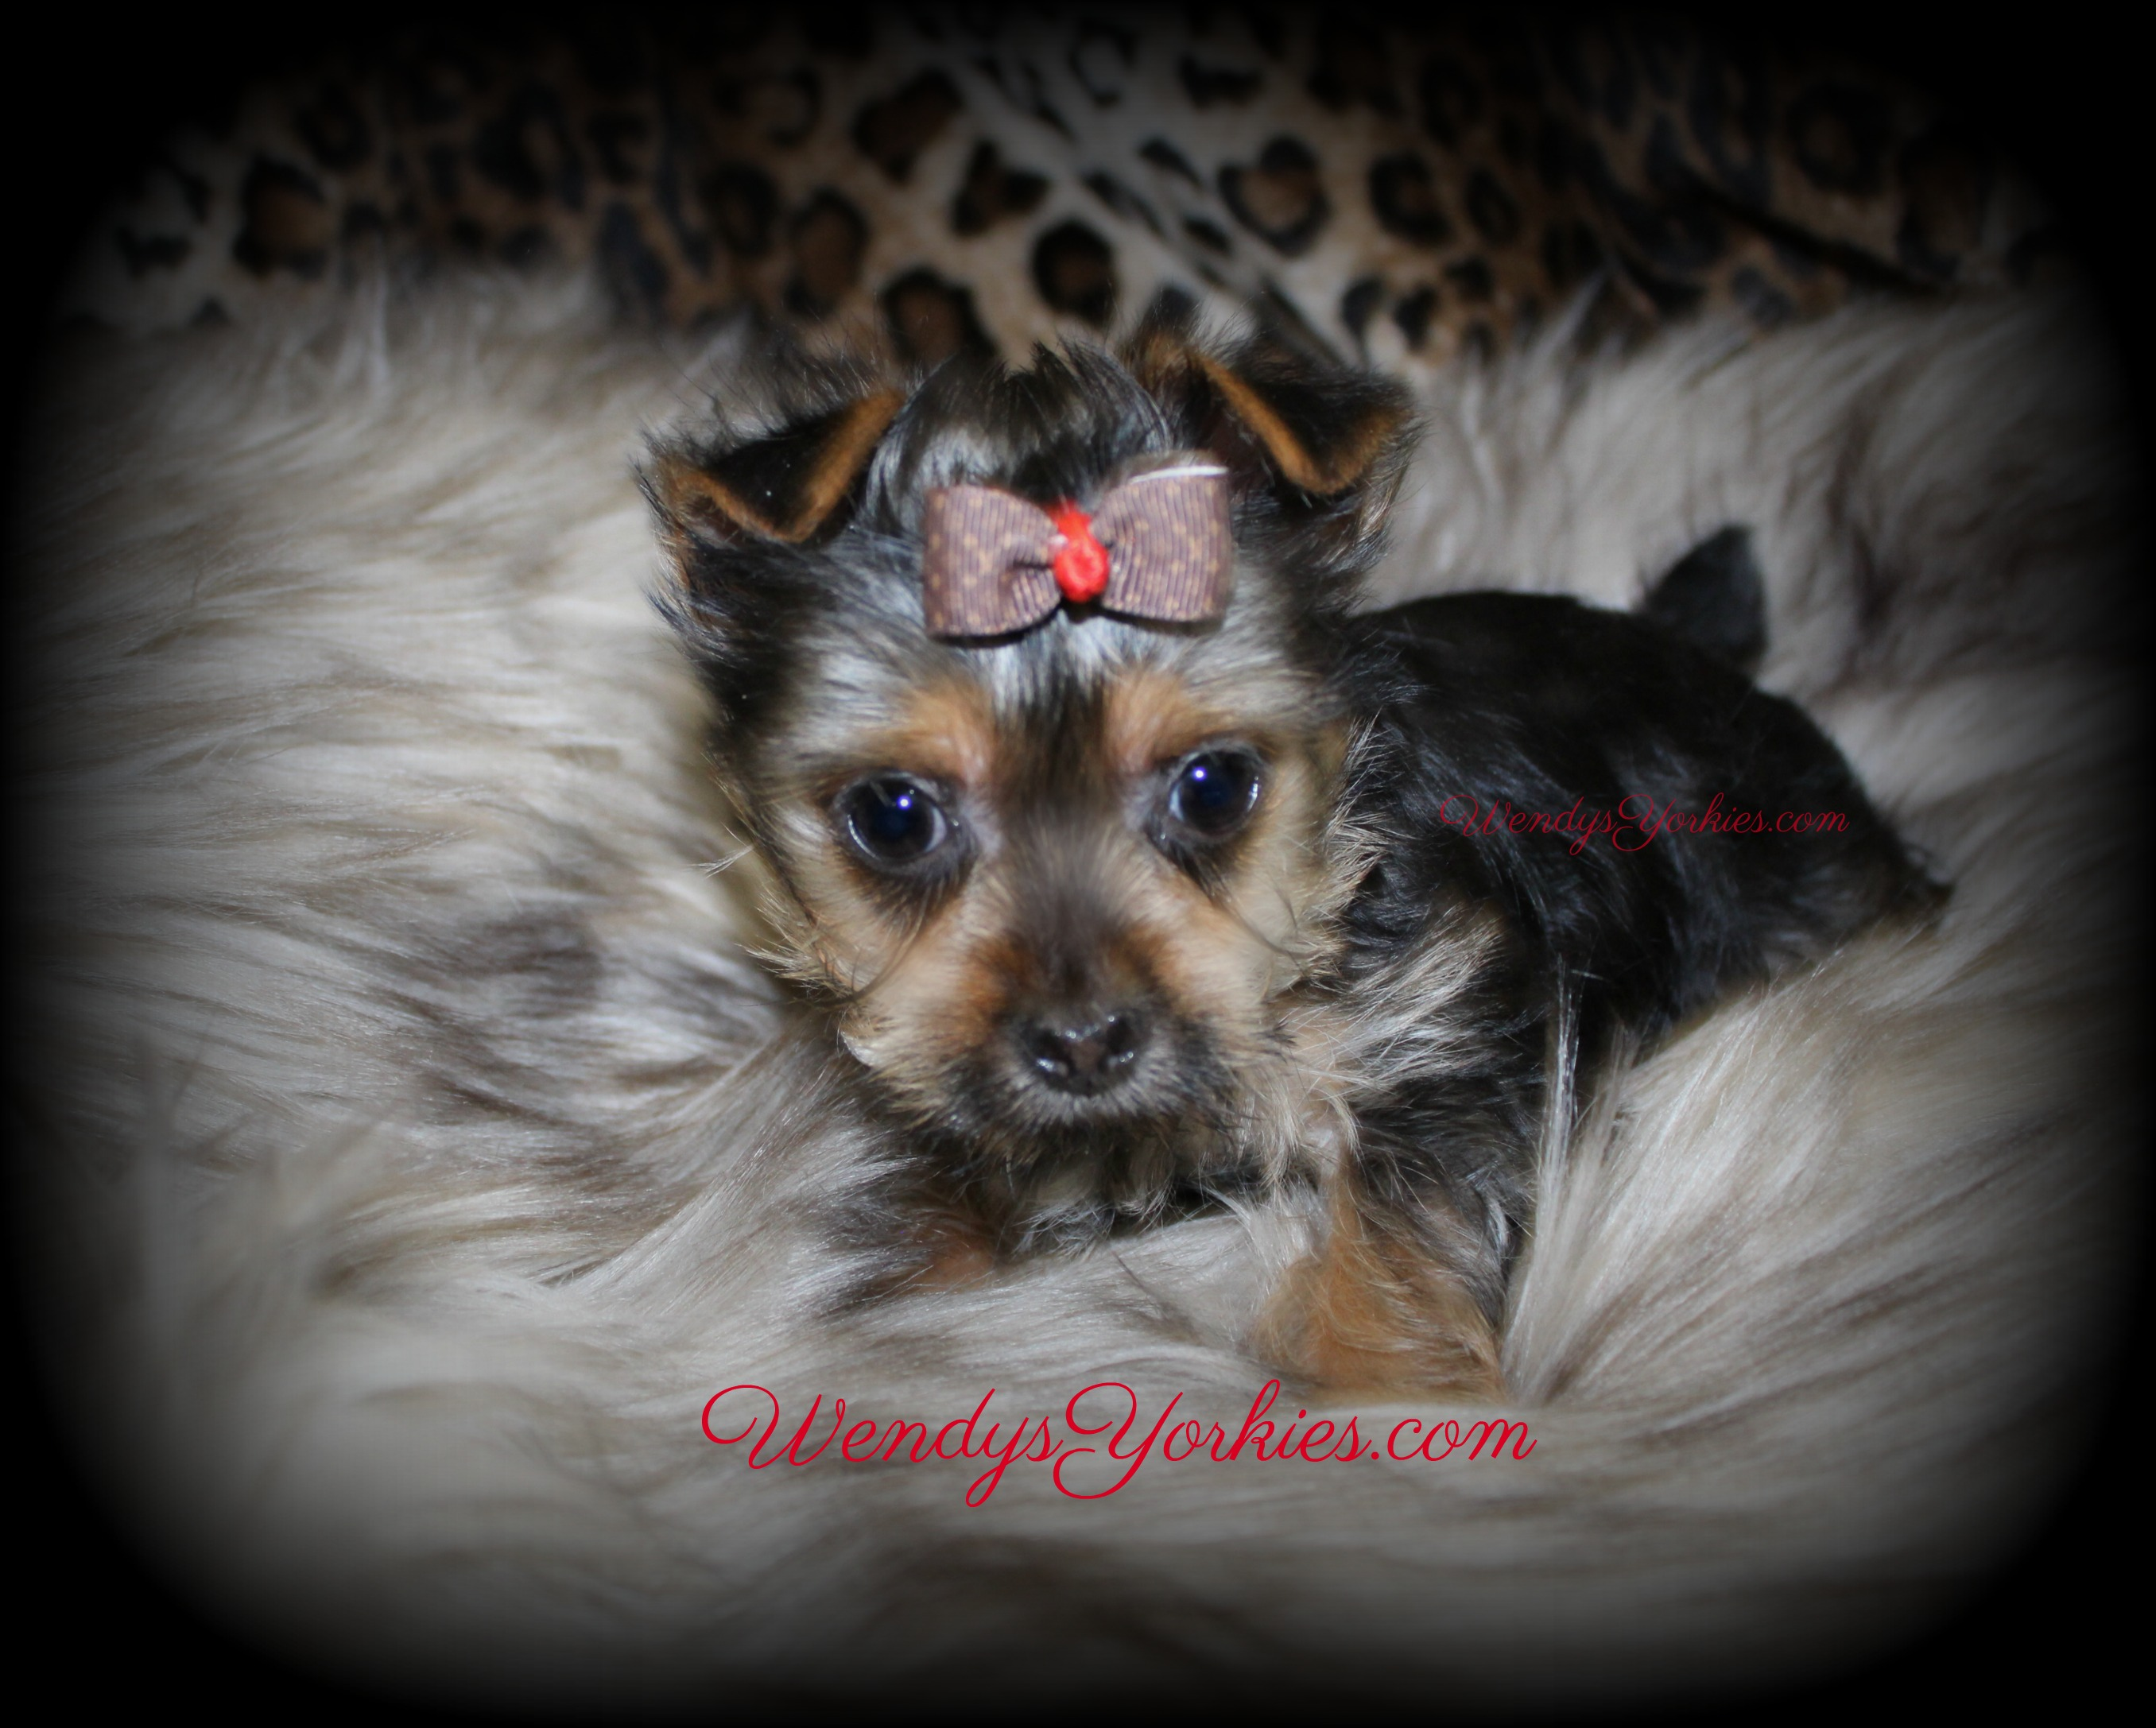 Tiny Male Yorkie puppy for sale in Texas, Dixie m3, WendysYorkies.com